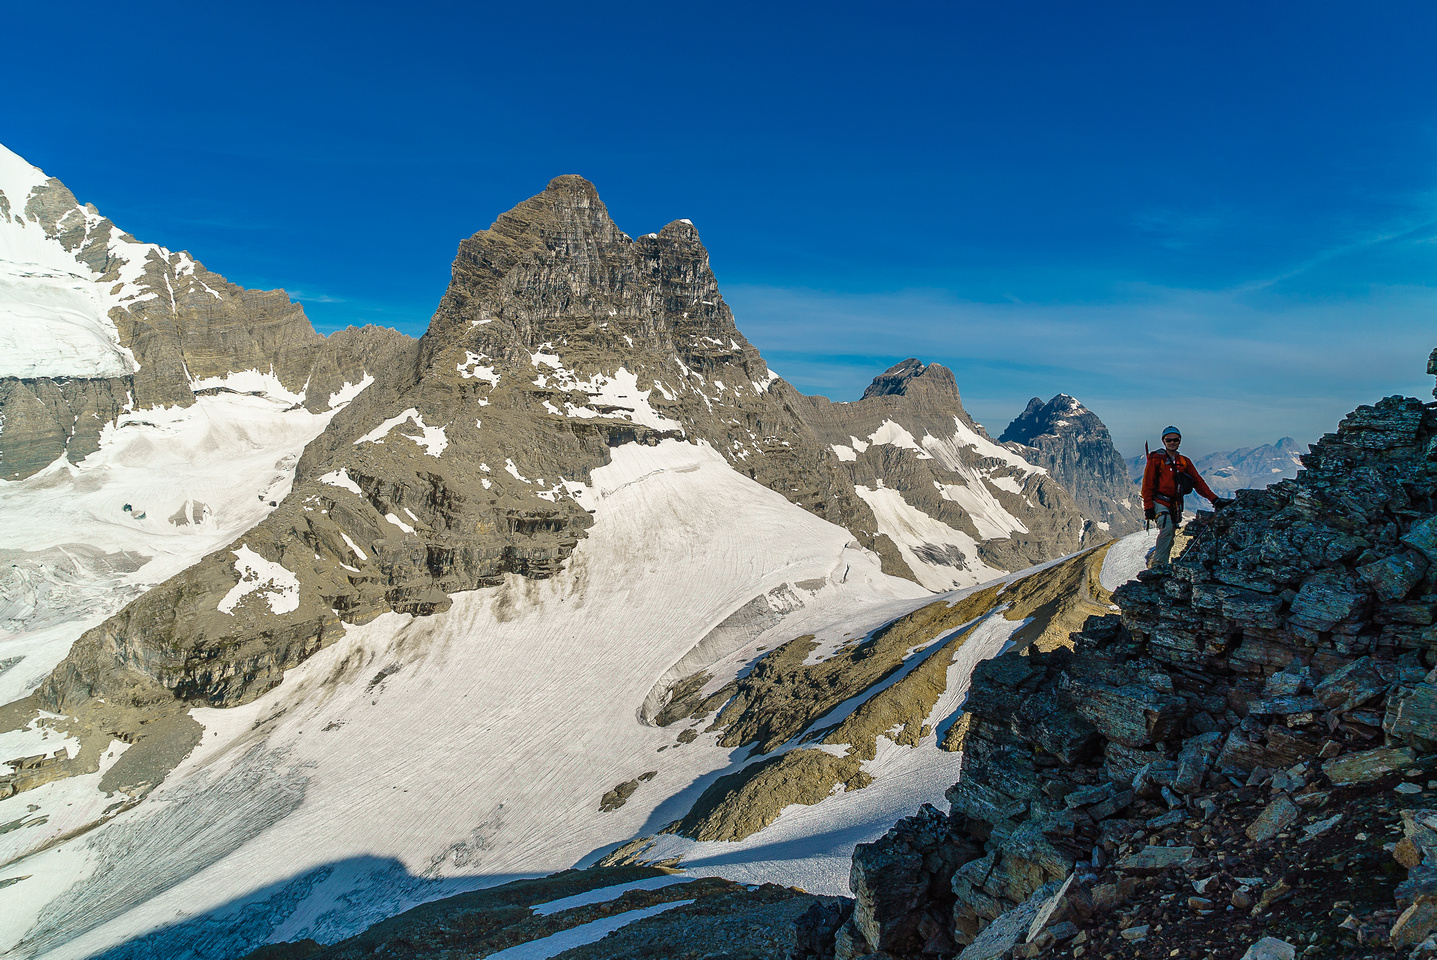 Ben climbs above the snow with the impressive summits of Prince Henry, Prince John and Queen Mary in the background